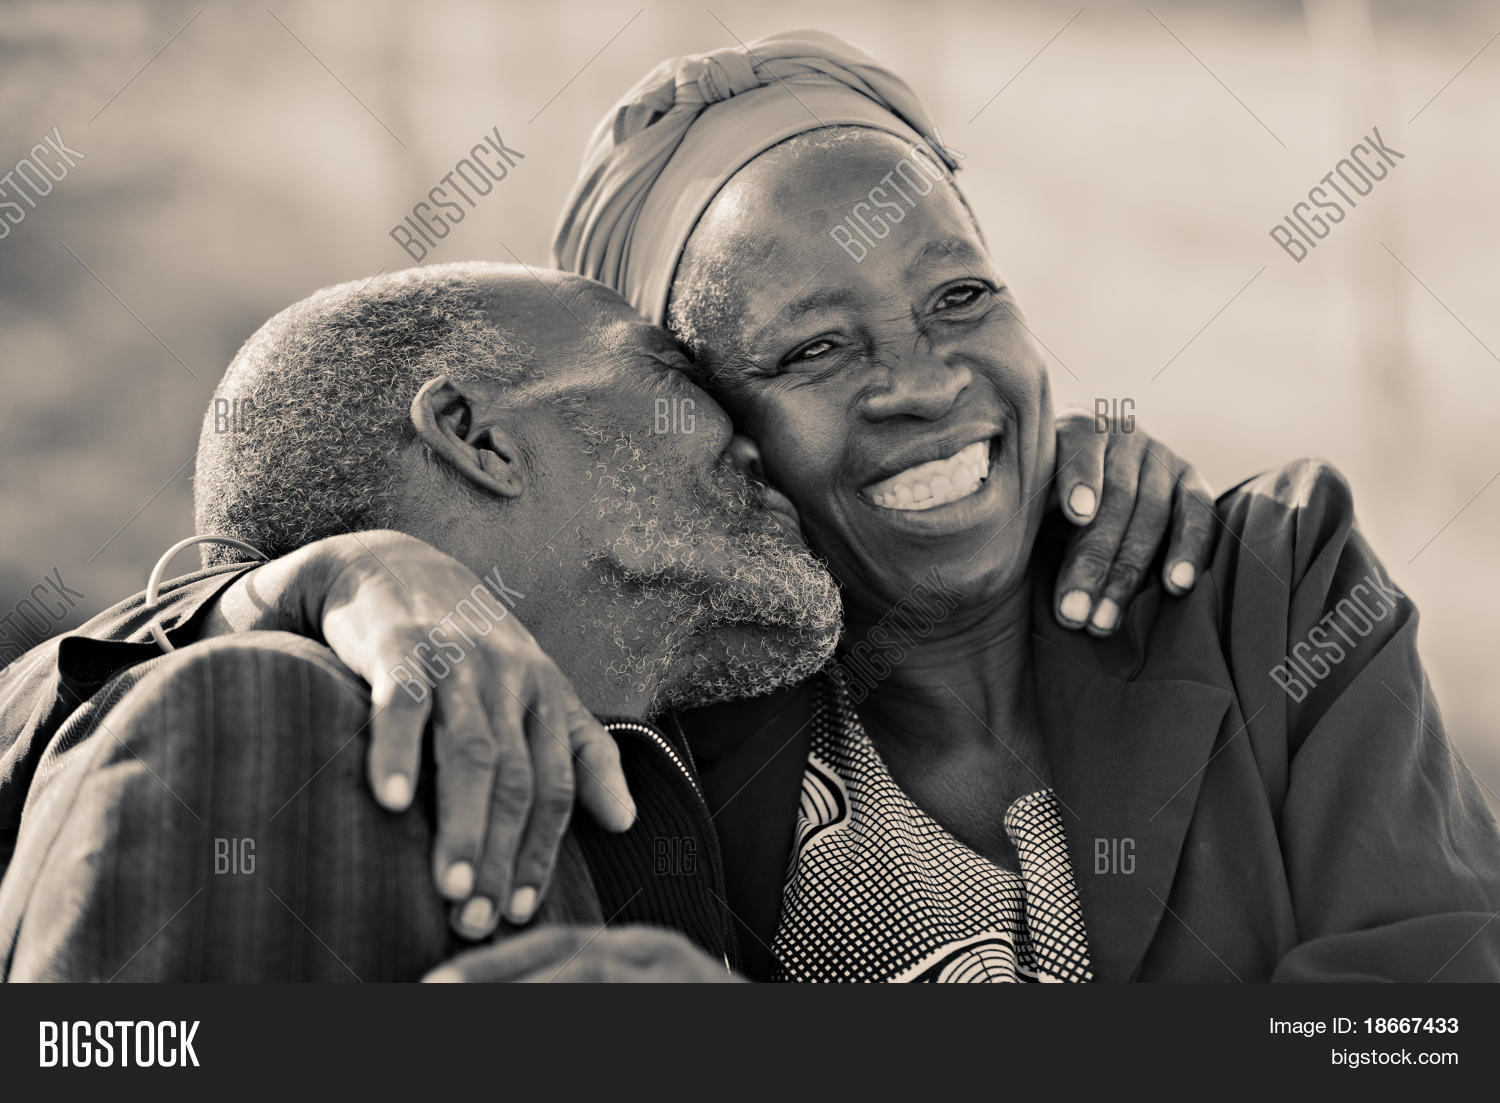 adorable,adore,africa,african,african american,african american couple,african american family,african american man,african american people,african american woman,african american women,african family,afro-american,american,care,couple,couple in love,couples in love,eighties,elder care,elderly,emotional,emotions,family,forever,grandfather,grandmother,happiness,happy,holding,horizontal,hug,kiss,love,man,married,old,pensioners,people,person,portrait,positive,retired,romantic,senior,senior couple,sentimental,seventies,smile,third,together,togetherness,toothy,woman,world,wrinkles